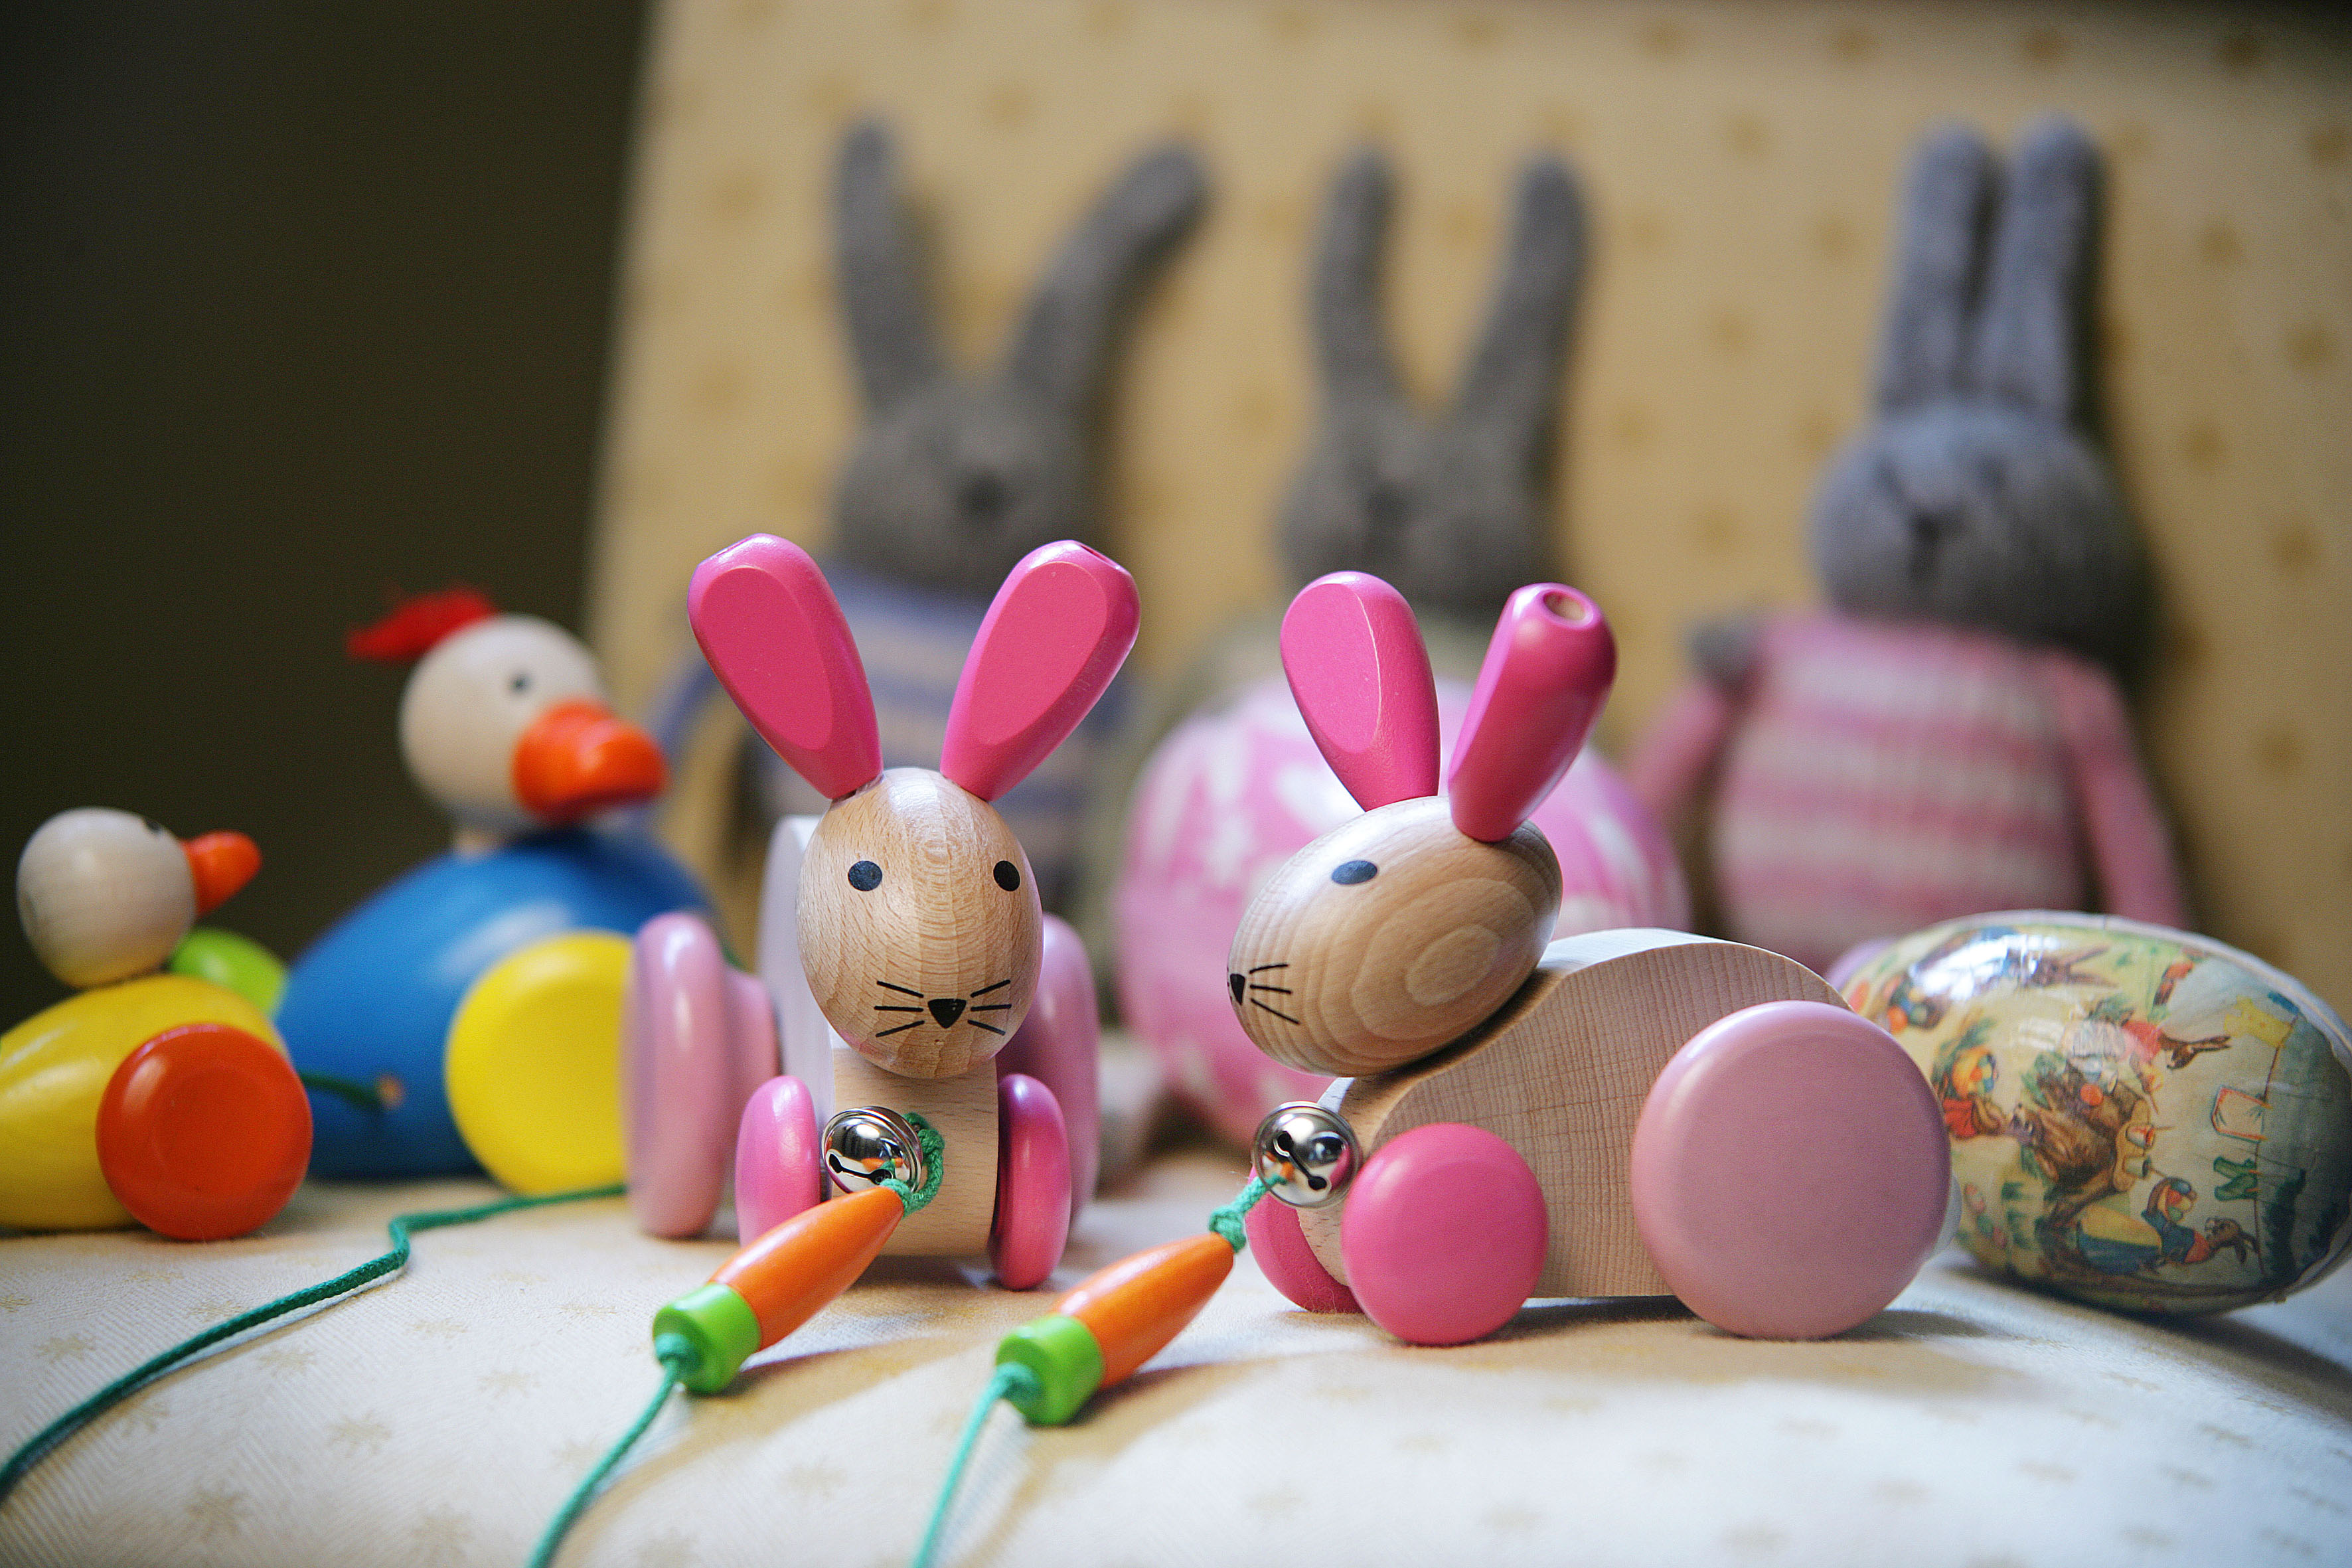 Alternative Easter toys for long lasting fun The Publicity